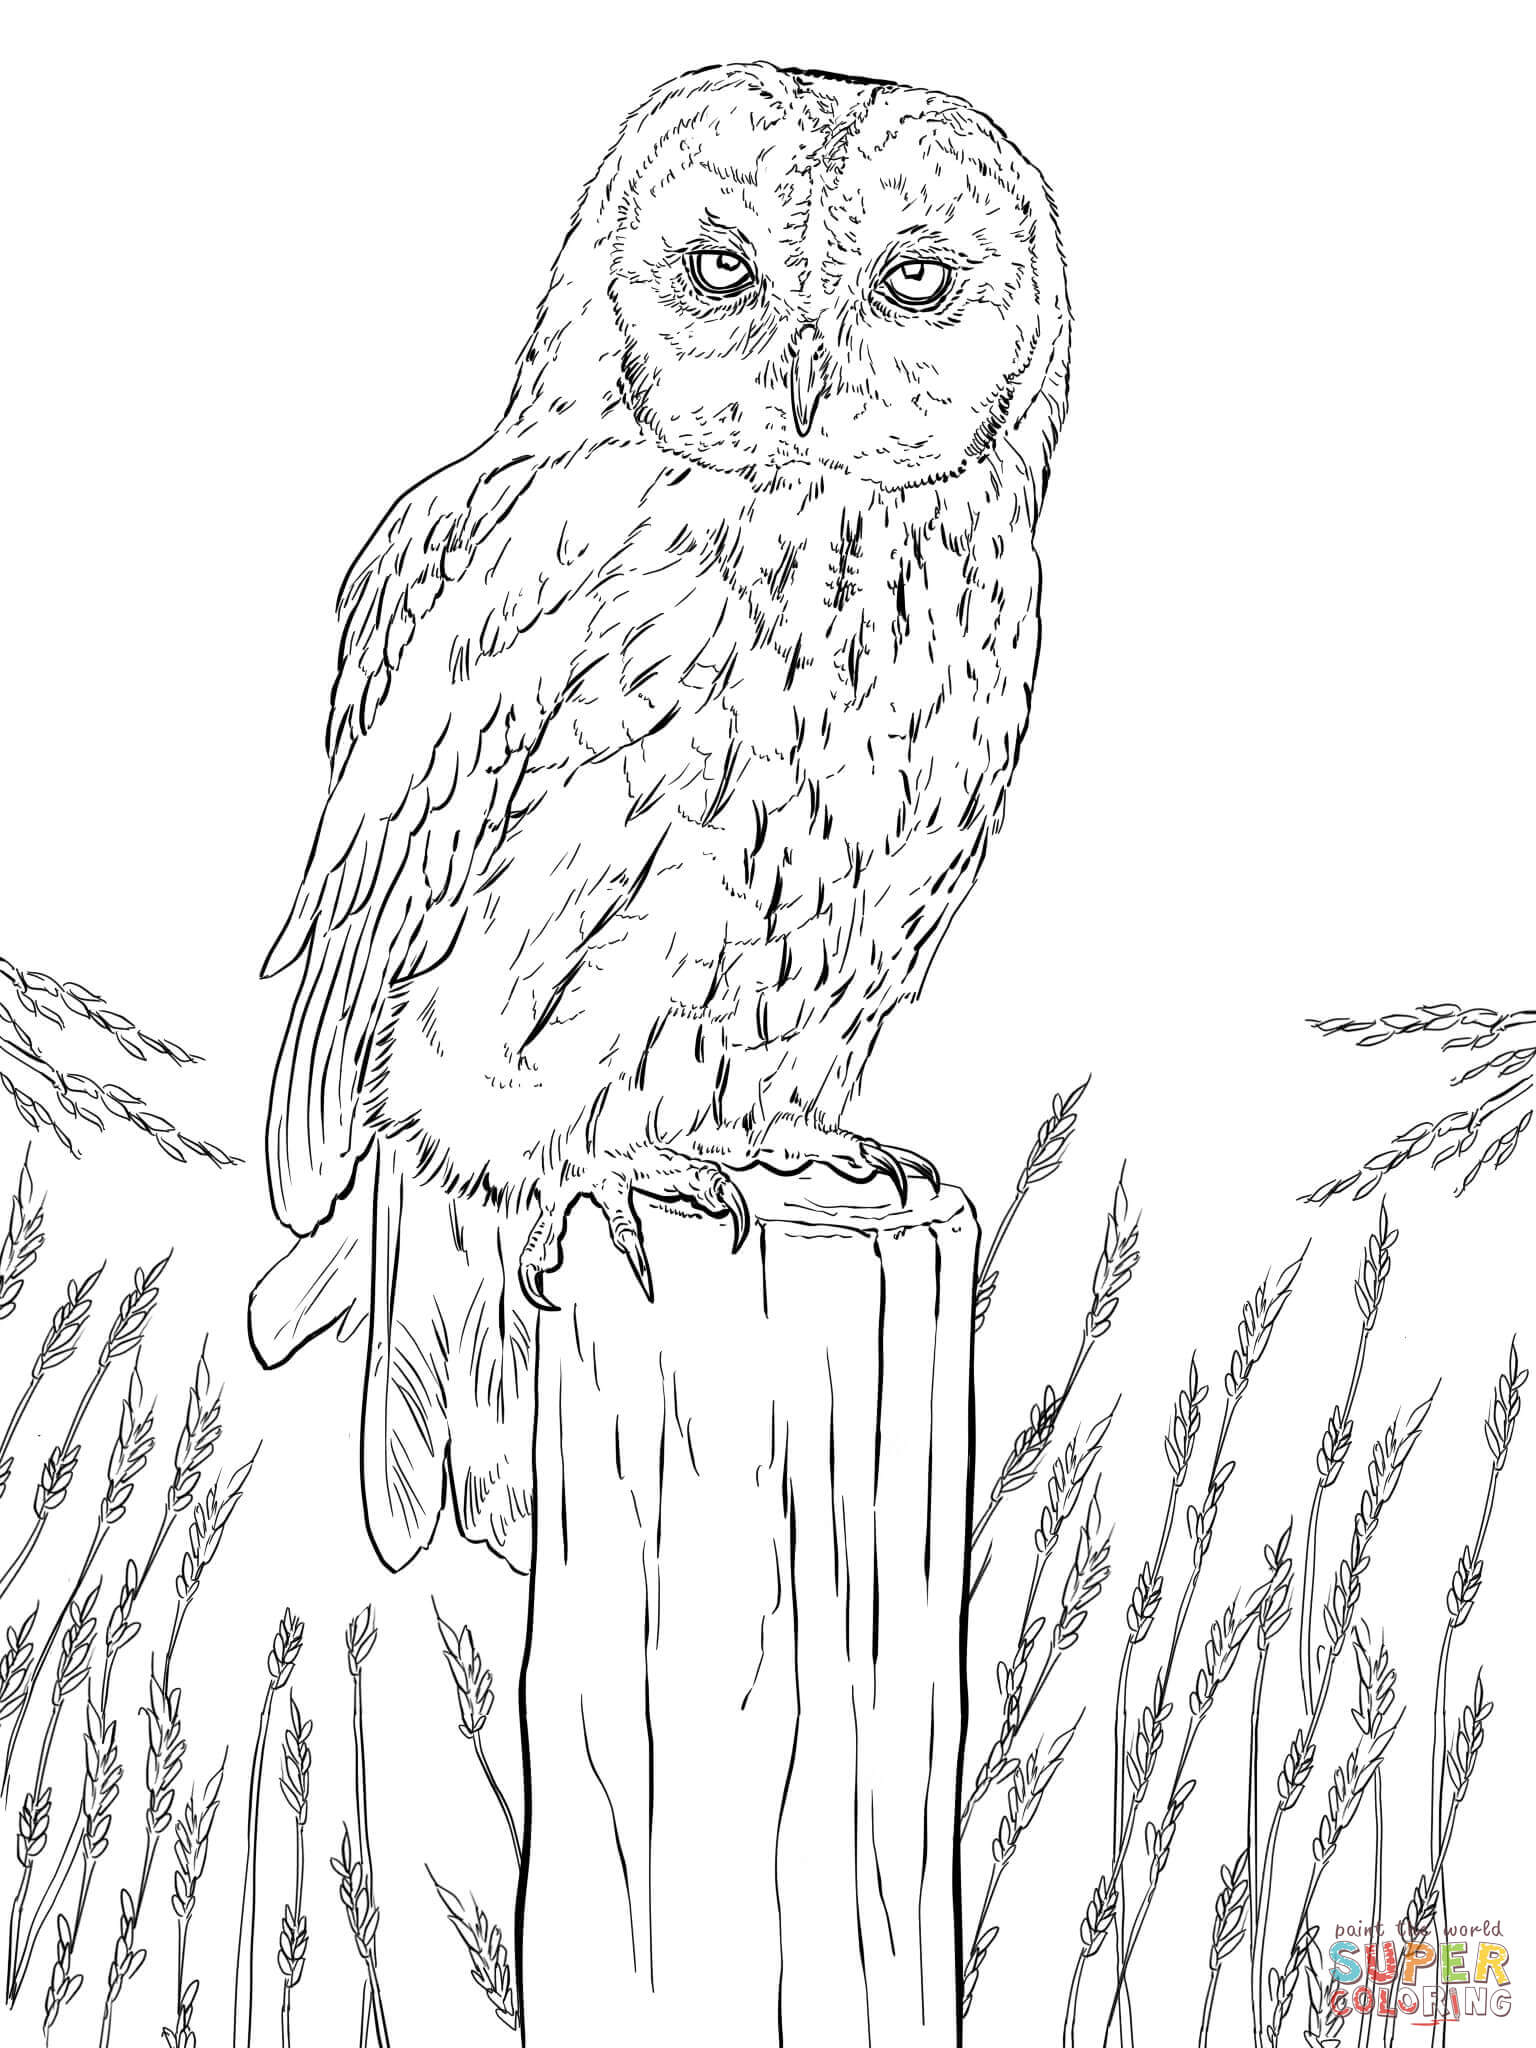 coloring pages owls tawny owl coloring page free printable coloring pages owls coloring pages